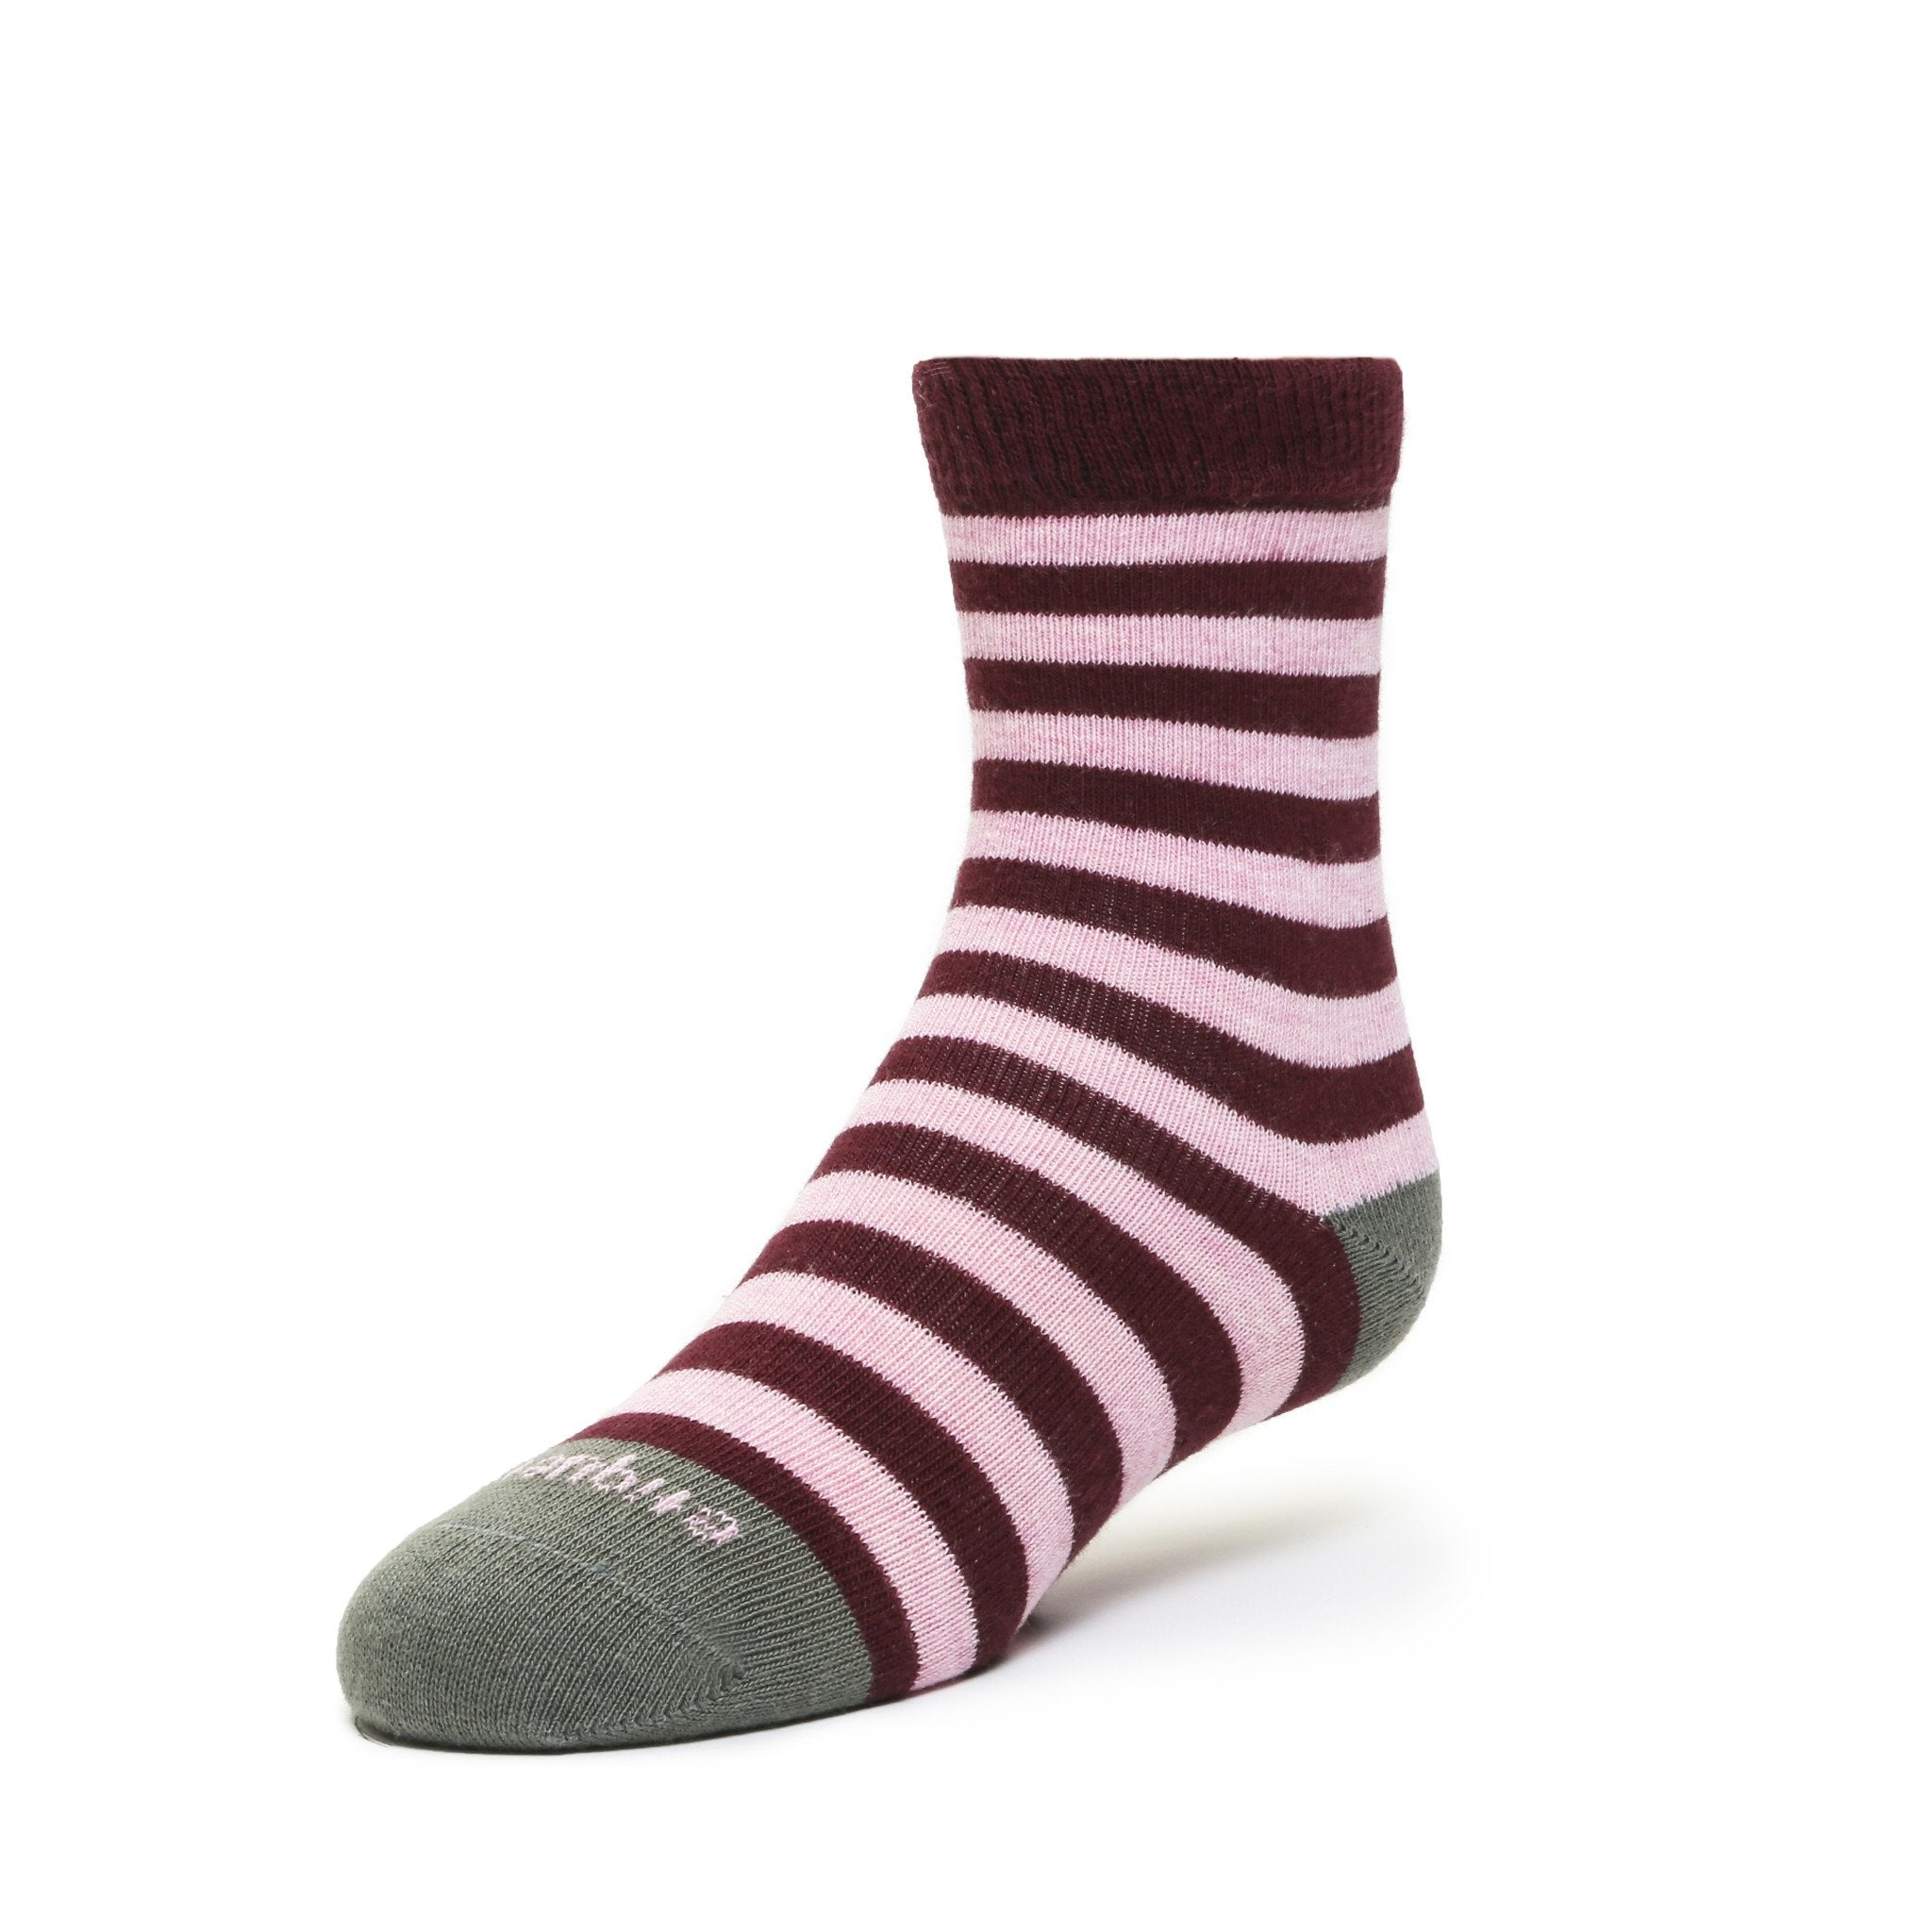 Abbey Stripes - Pink Heather - Image 2